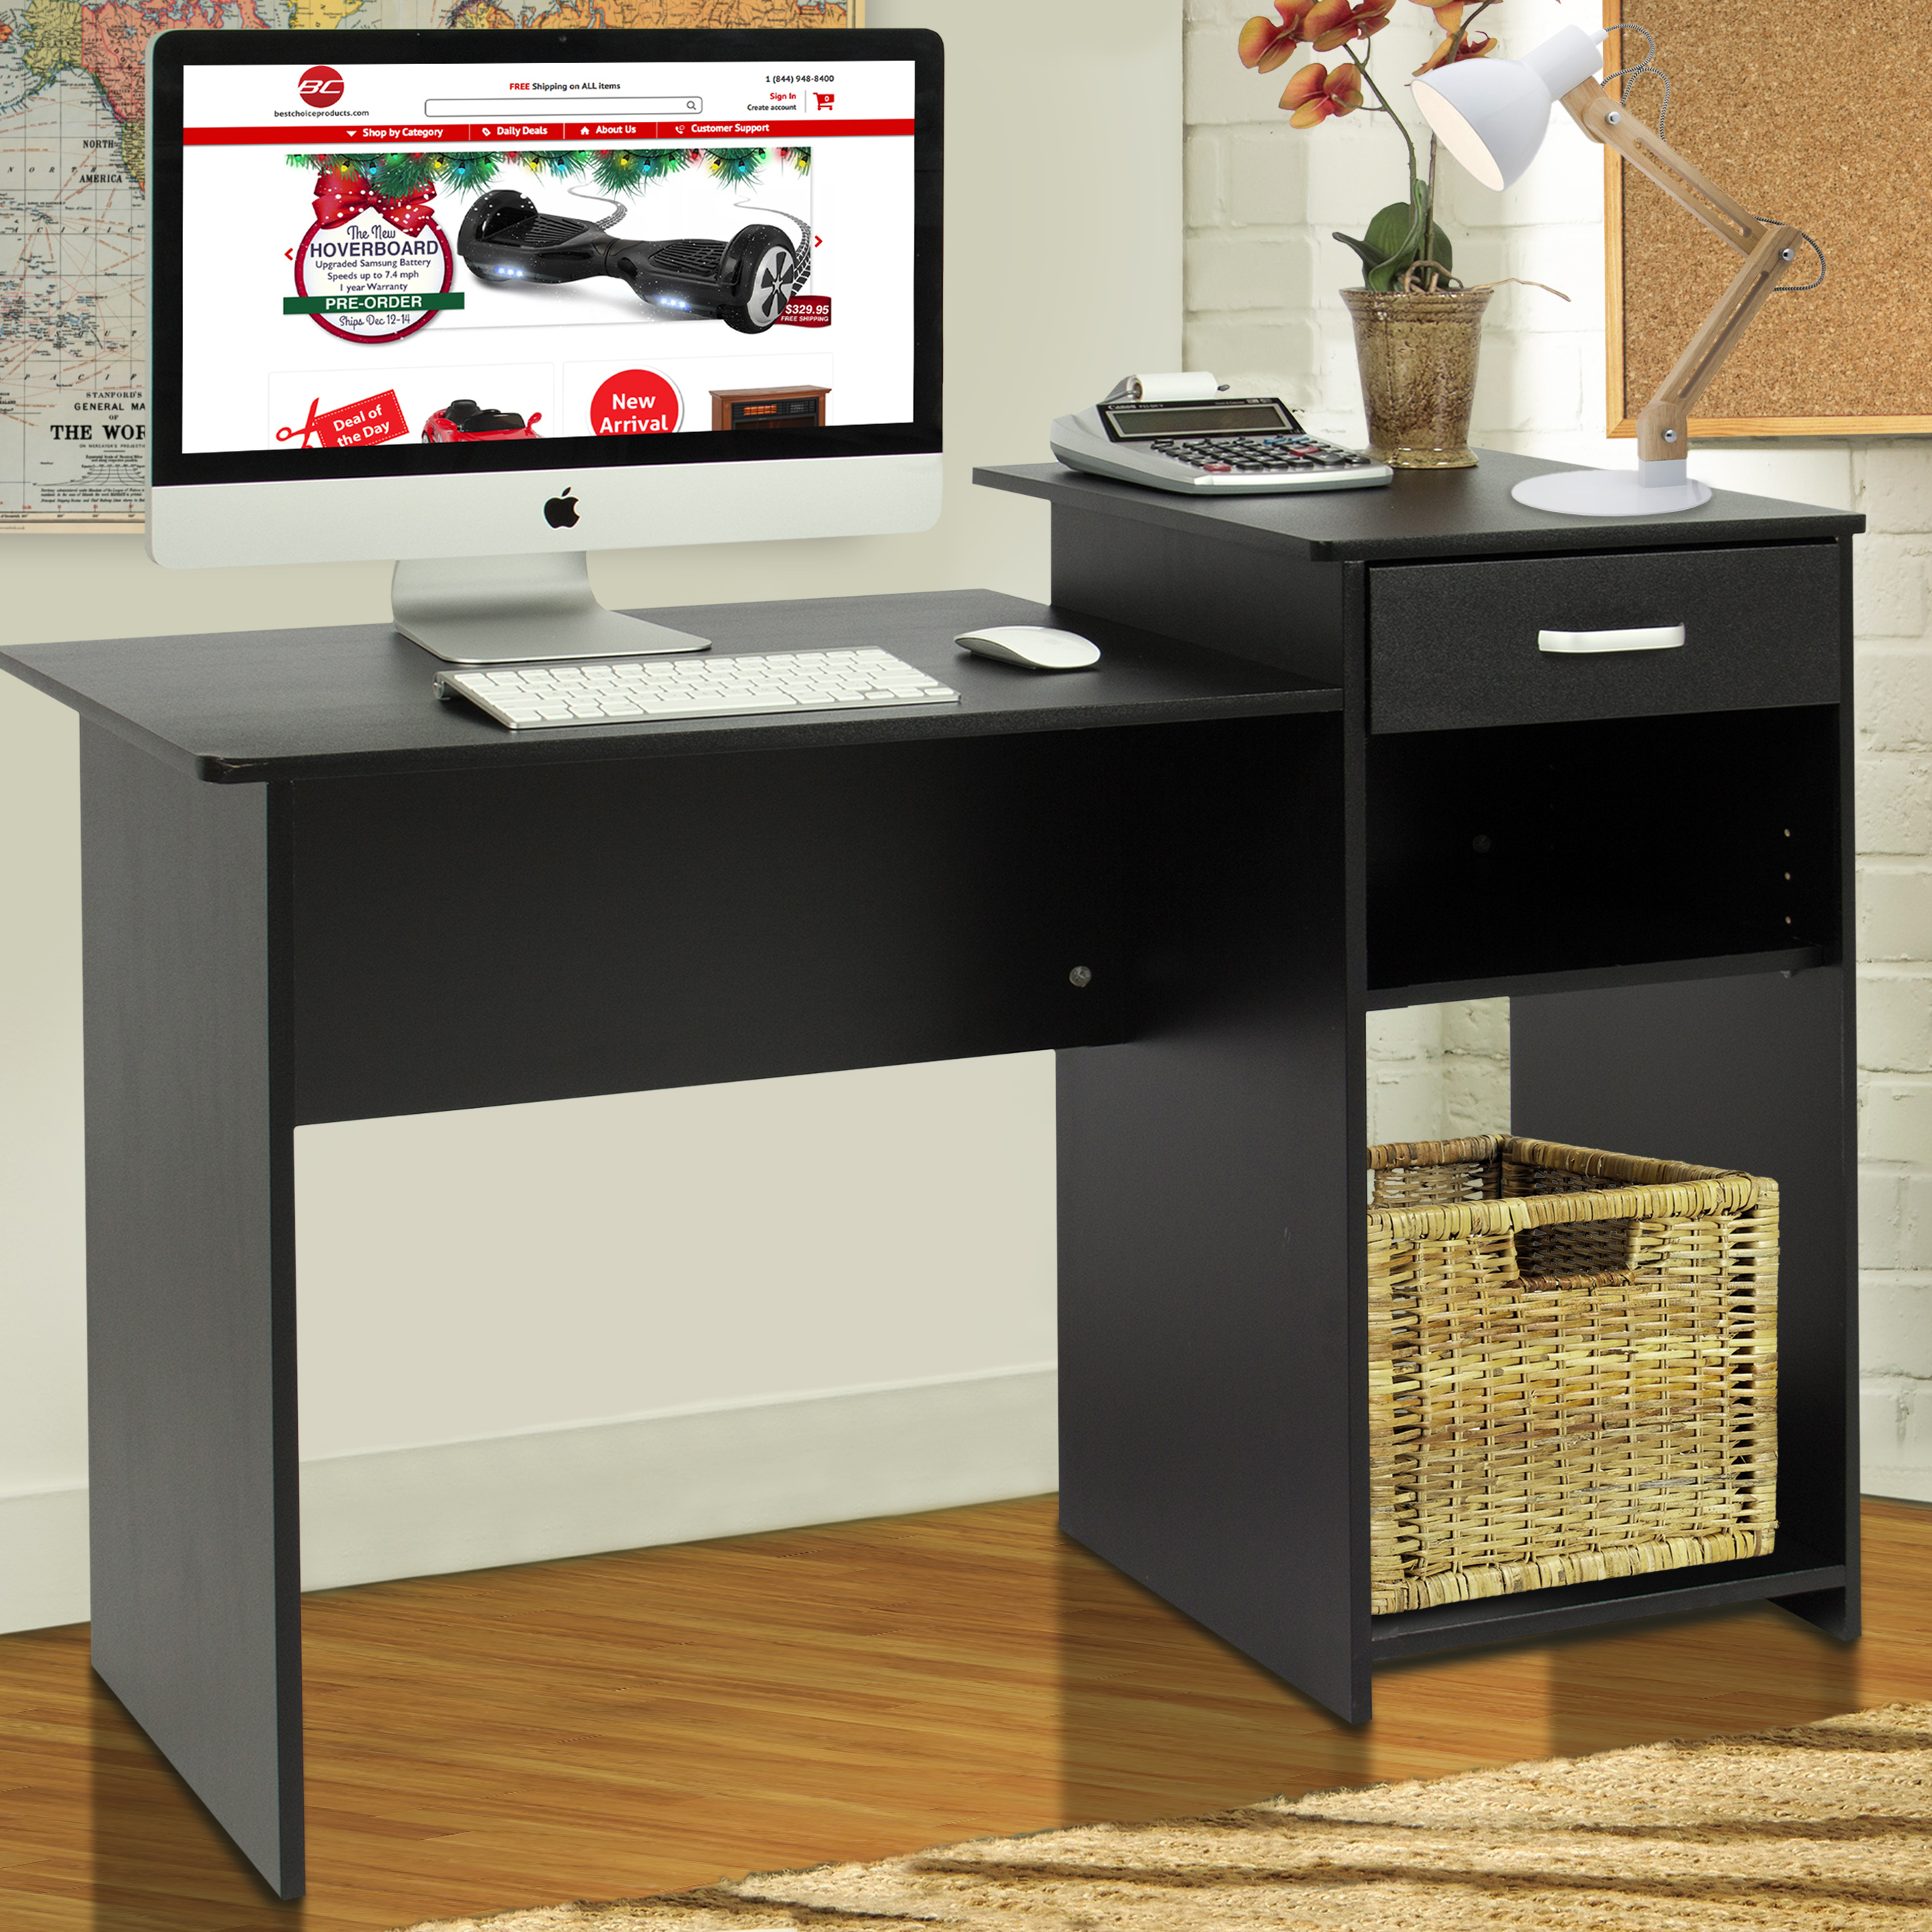 student computer desk home office wood laptop table study workstation dorm bk walmartcom